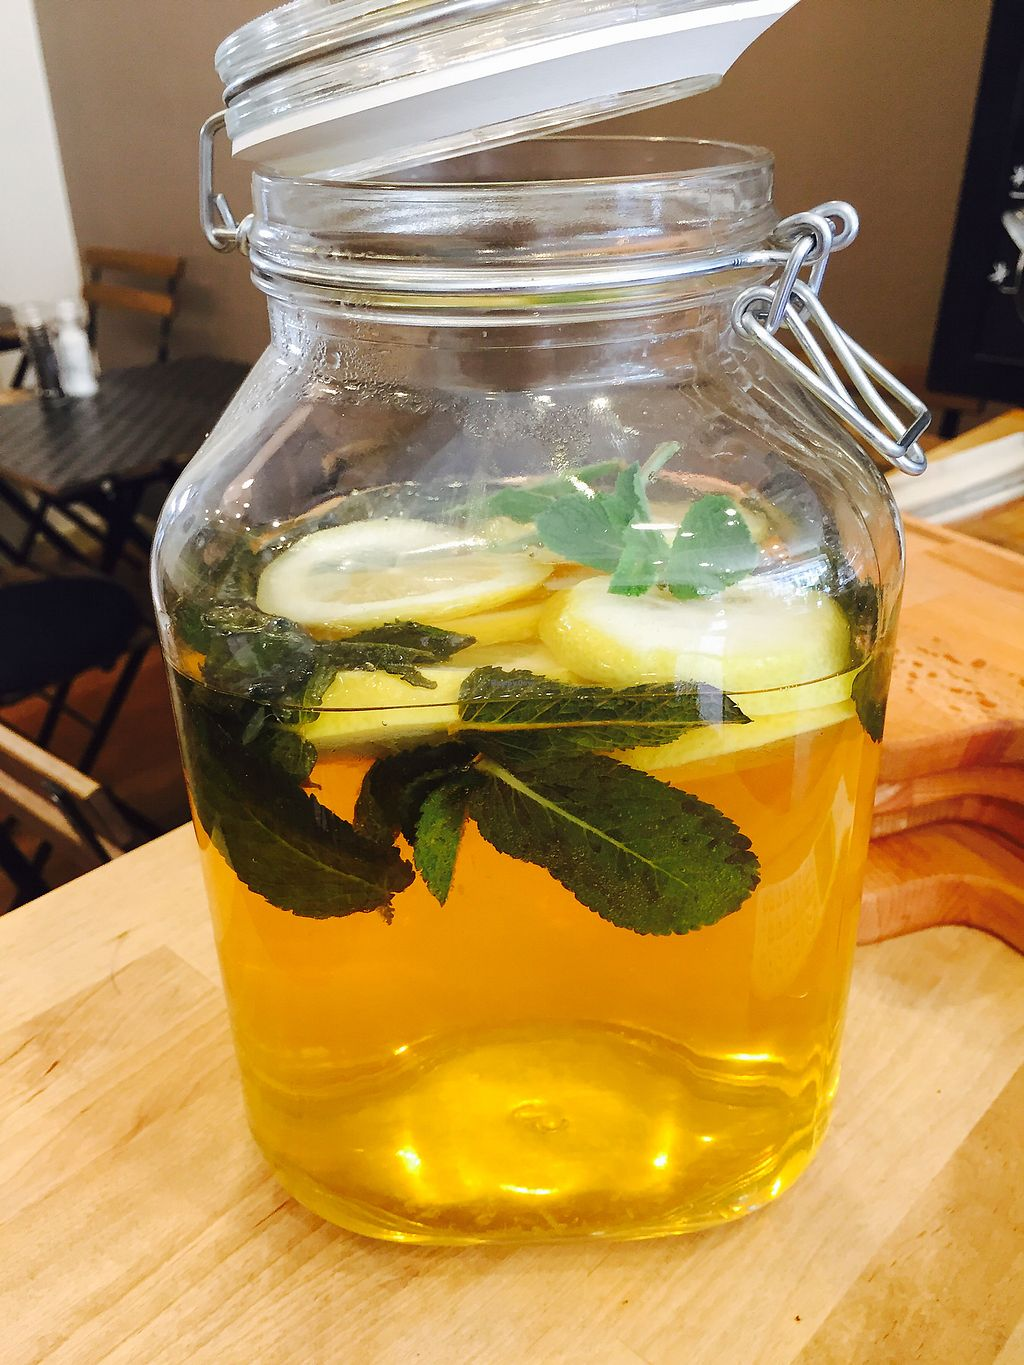 """Photo of Oscar  by <a href=""""/members/profile/B%C3%A9aB%C3%A9a"""">BéaBéa</a> <br/>Thé glacé maison gingembre citron orange.. tonic? <br/> September 12, 2017  - <a href='/contact/abuse/image/99784/303780'>Report</a>"""